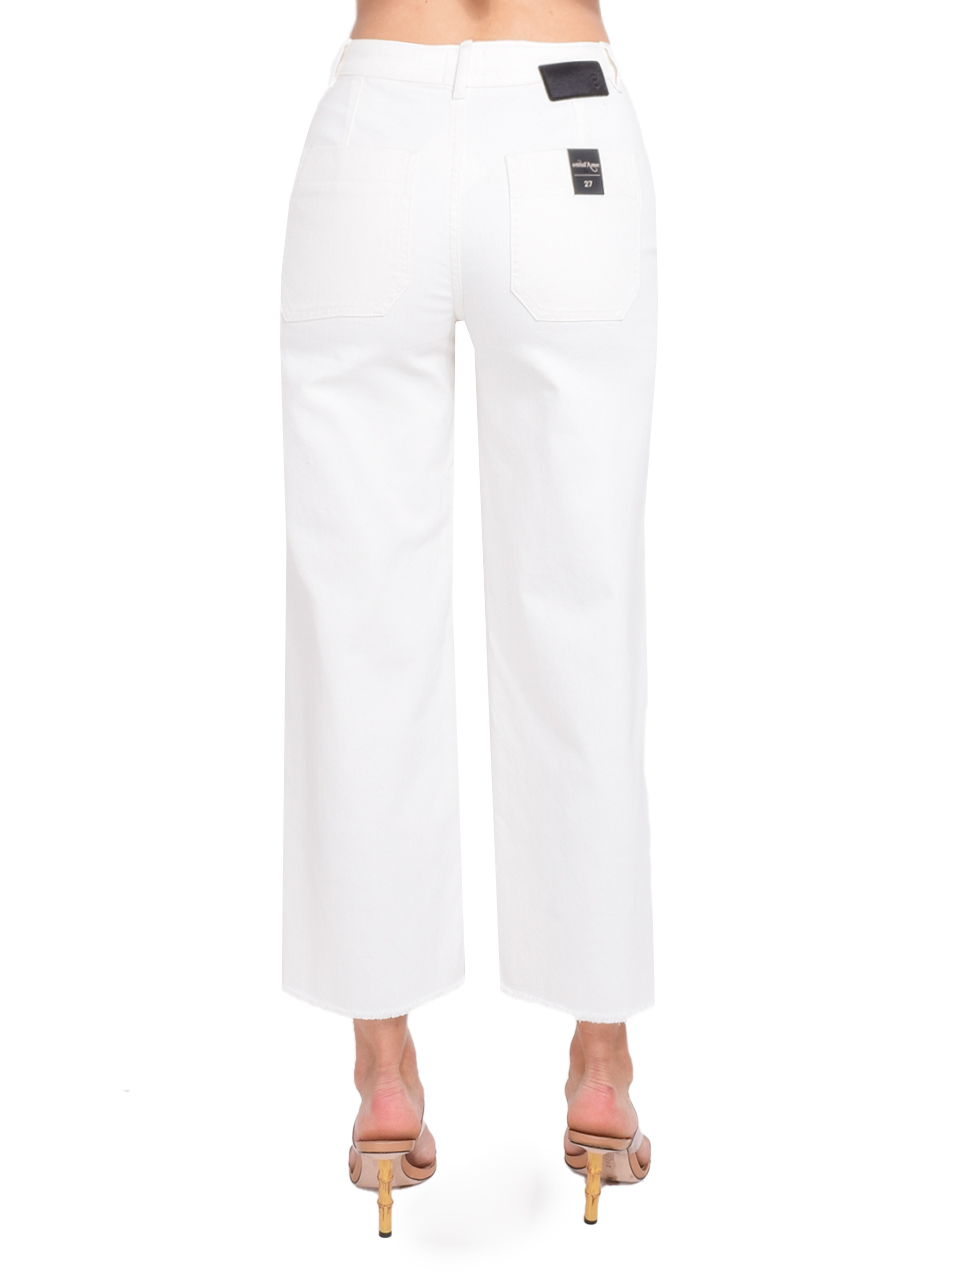 Ottod'Ame Cropped Flare Jeans in White Back View